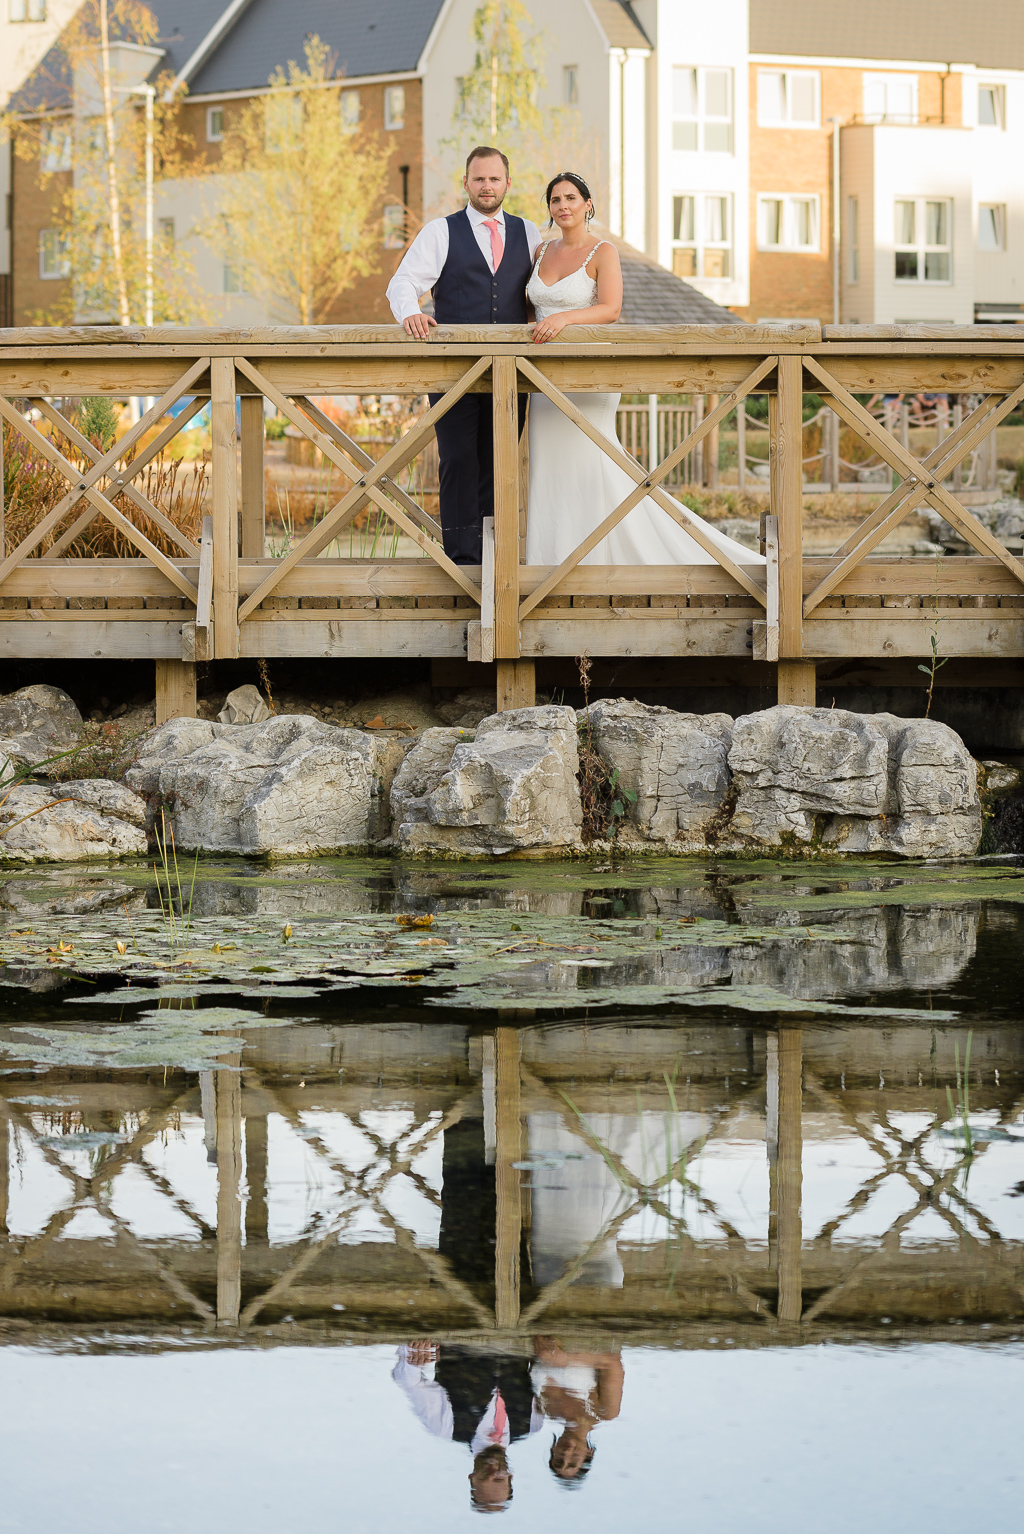 Bride and groom's portraits at the wedding reception | Greenhithe Wedding Photographer | Oakhouse Photography